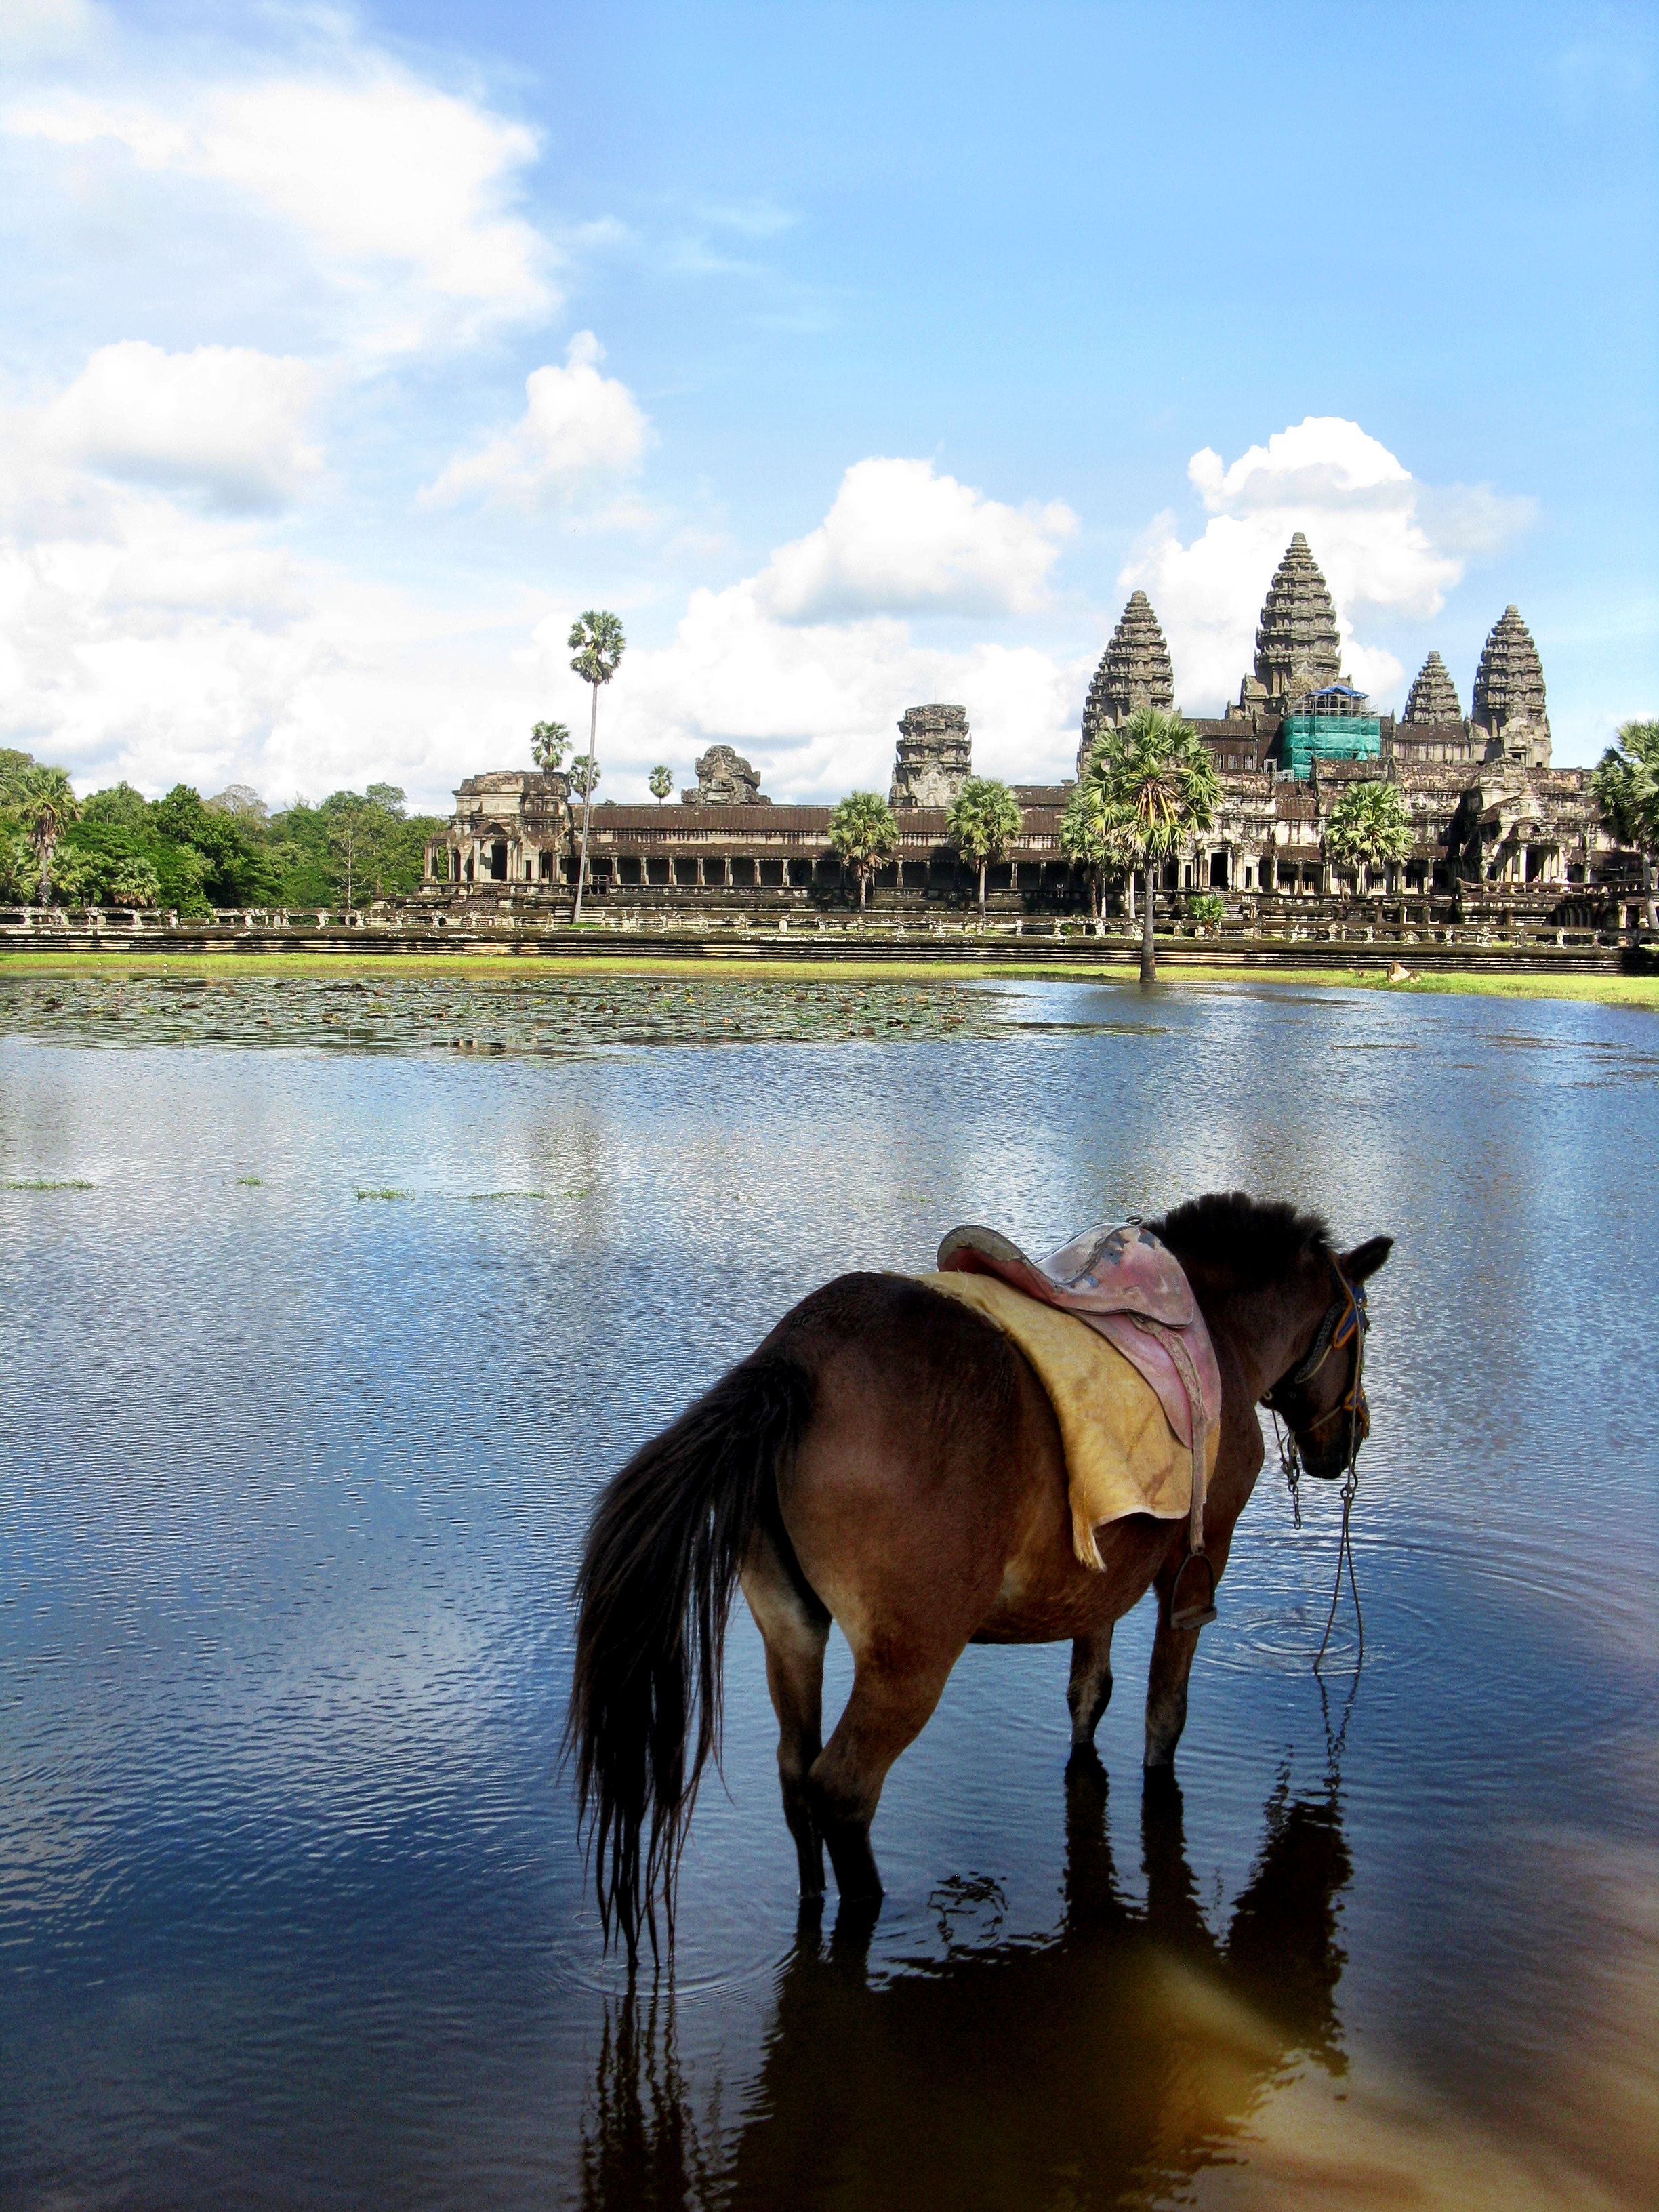 The legendary Angkor Wat